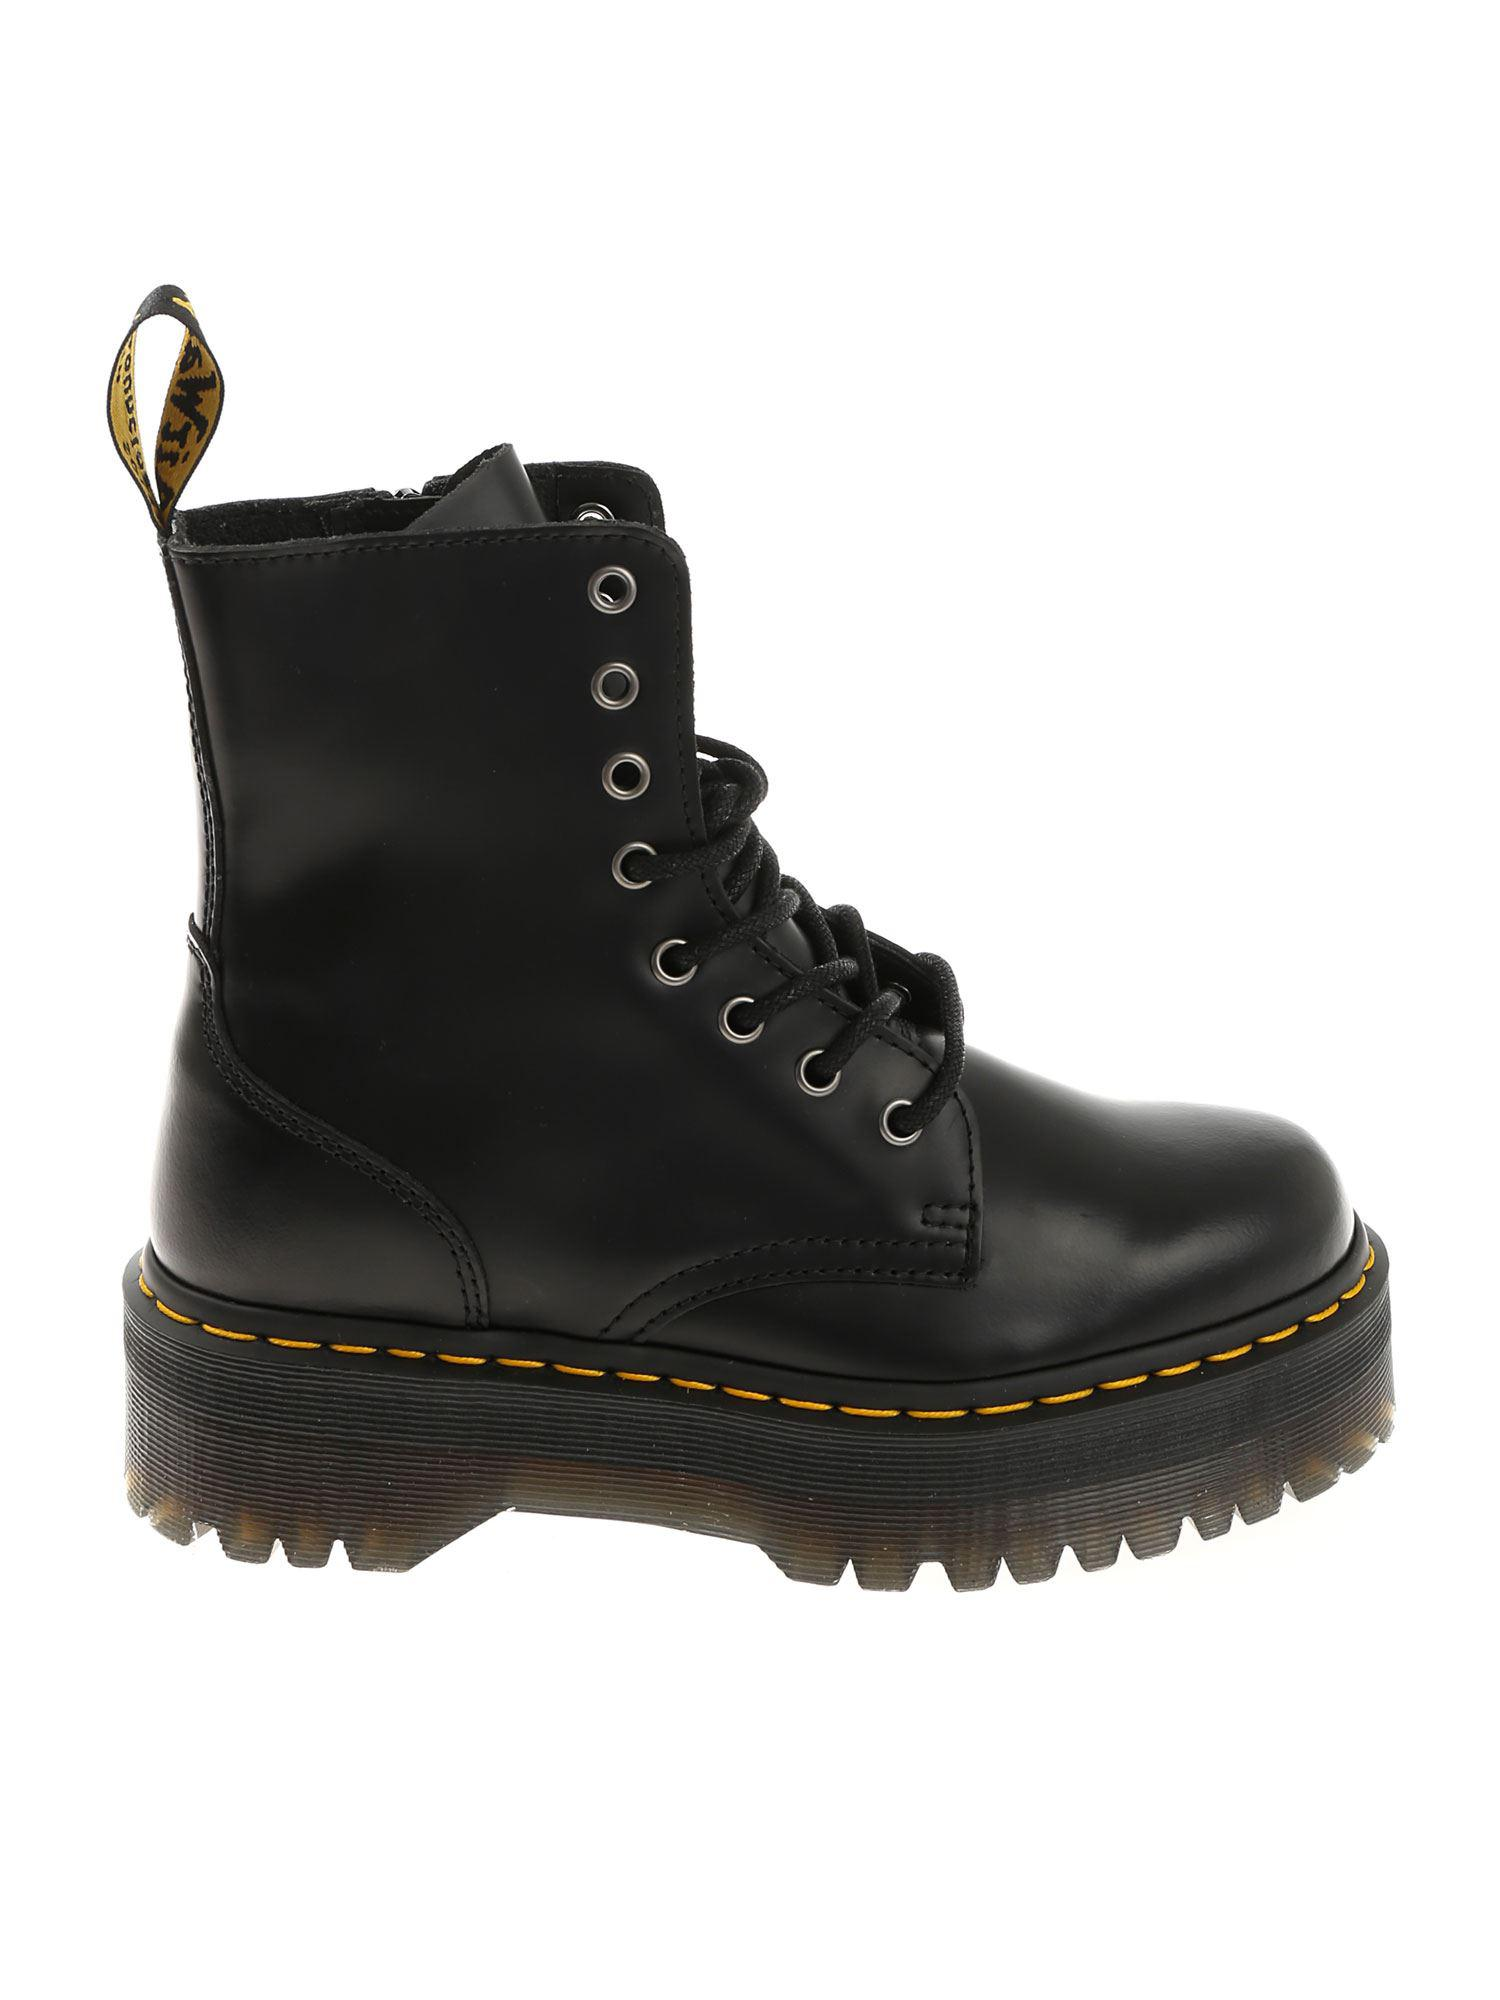 0f8a4ae8dba3 Dr. Martens Black Jadon Ankle Boots in Black - Lyst